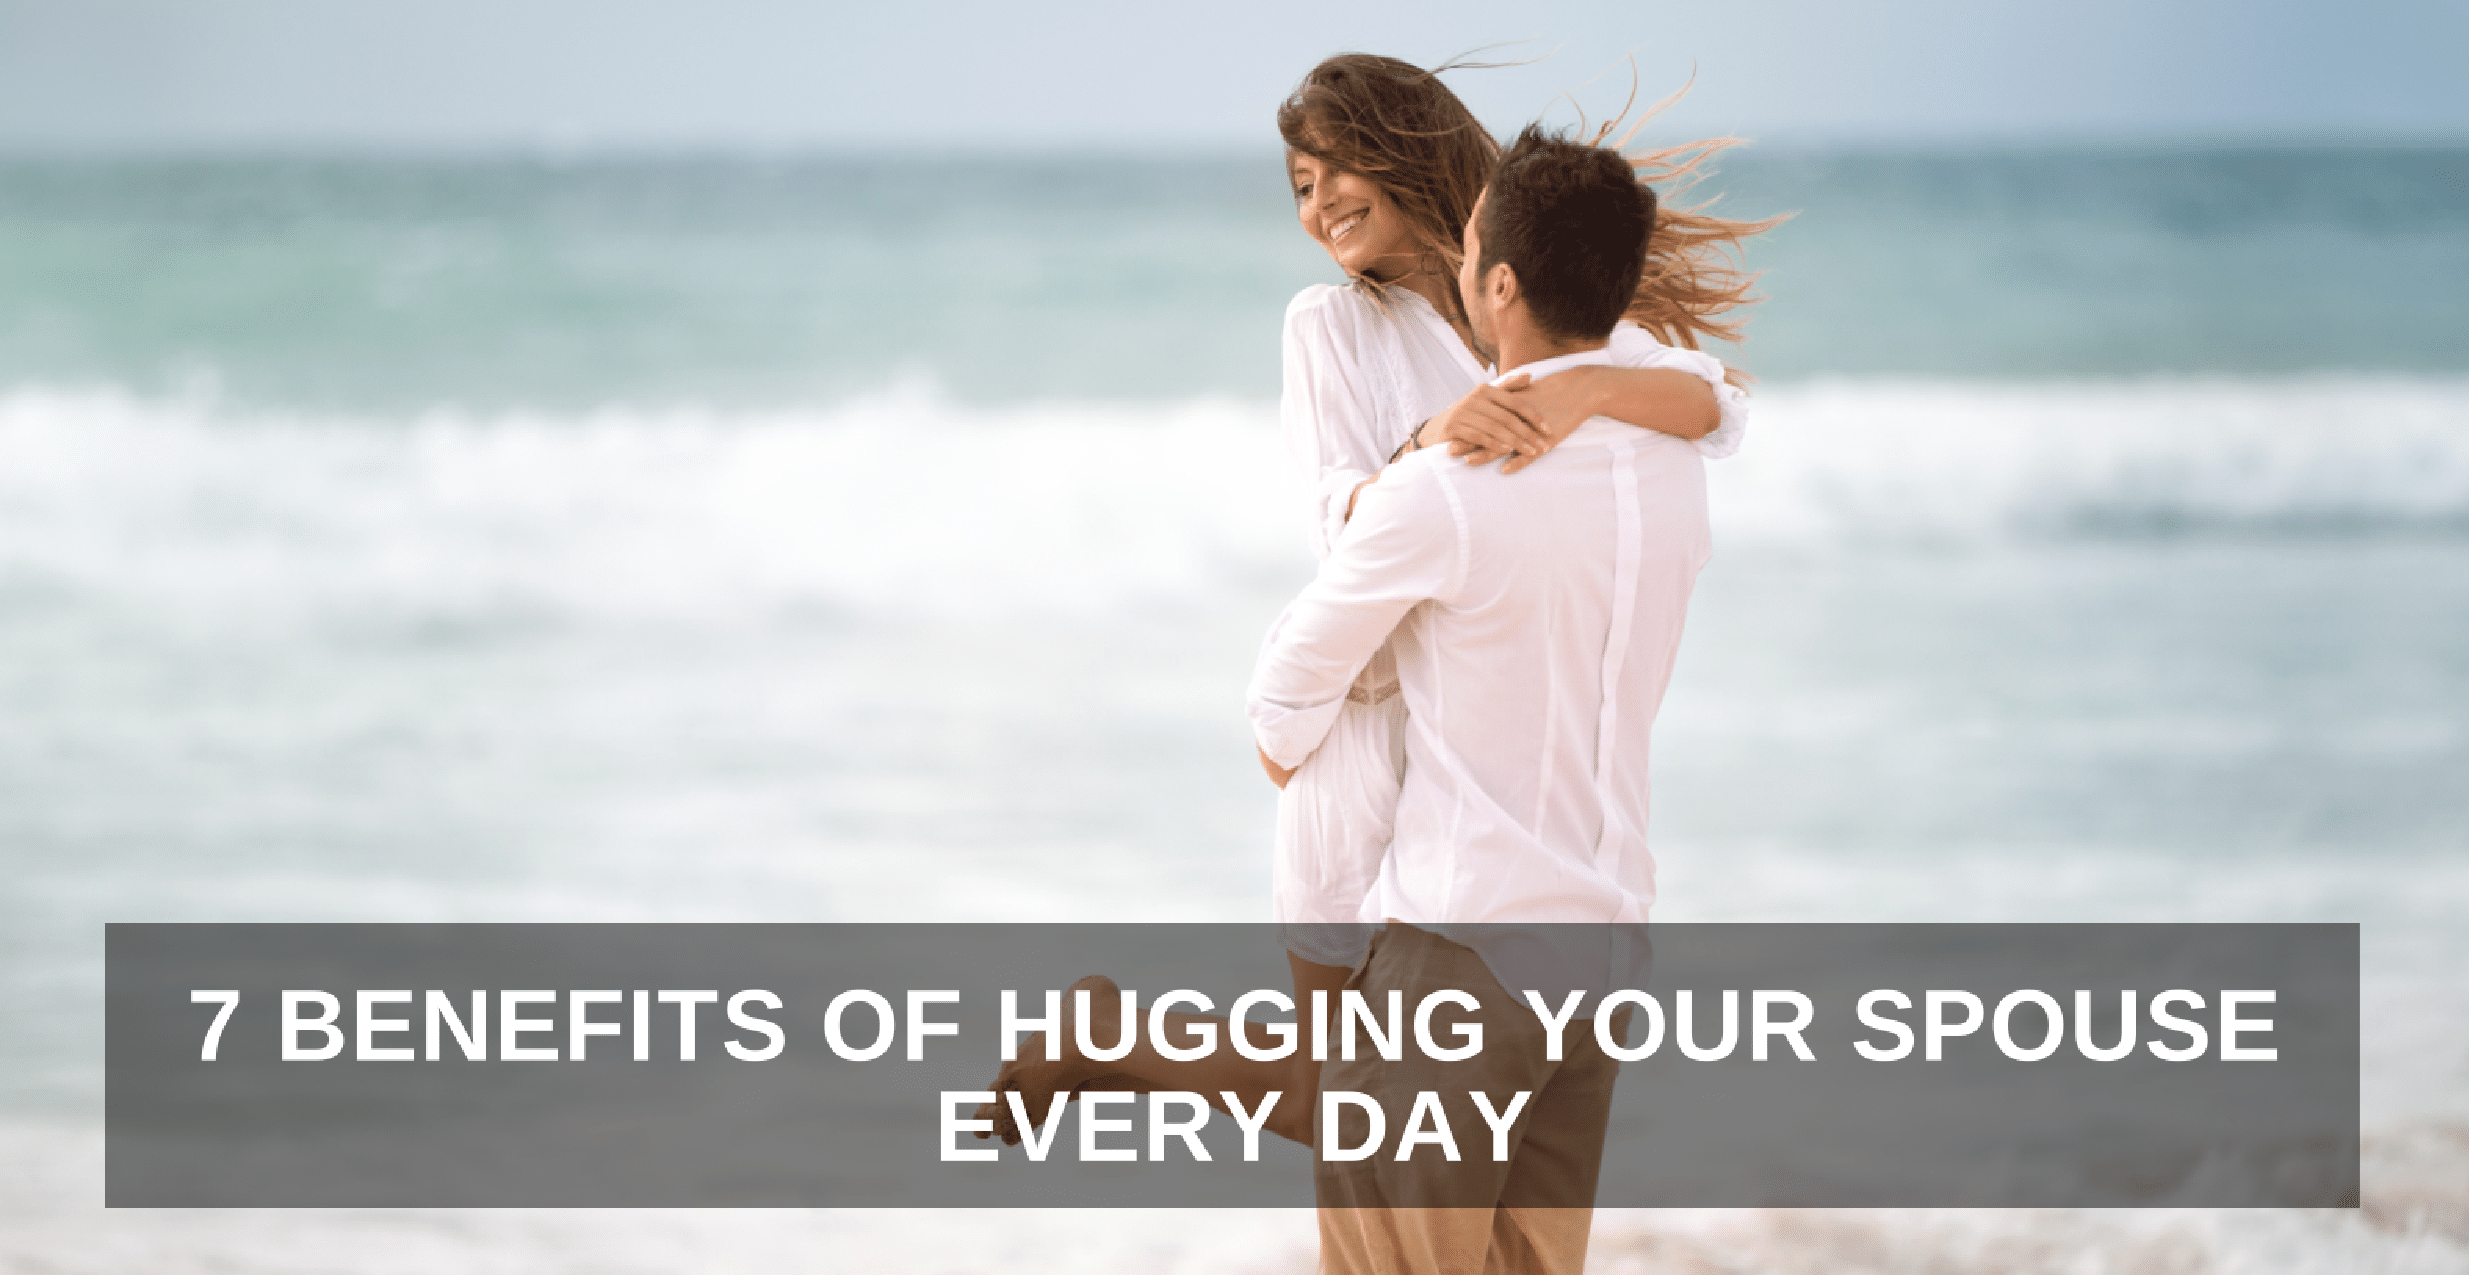 7 BENEFITS OF HUGGING YOUR SPOUSE EVERY DAY - ONE